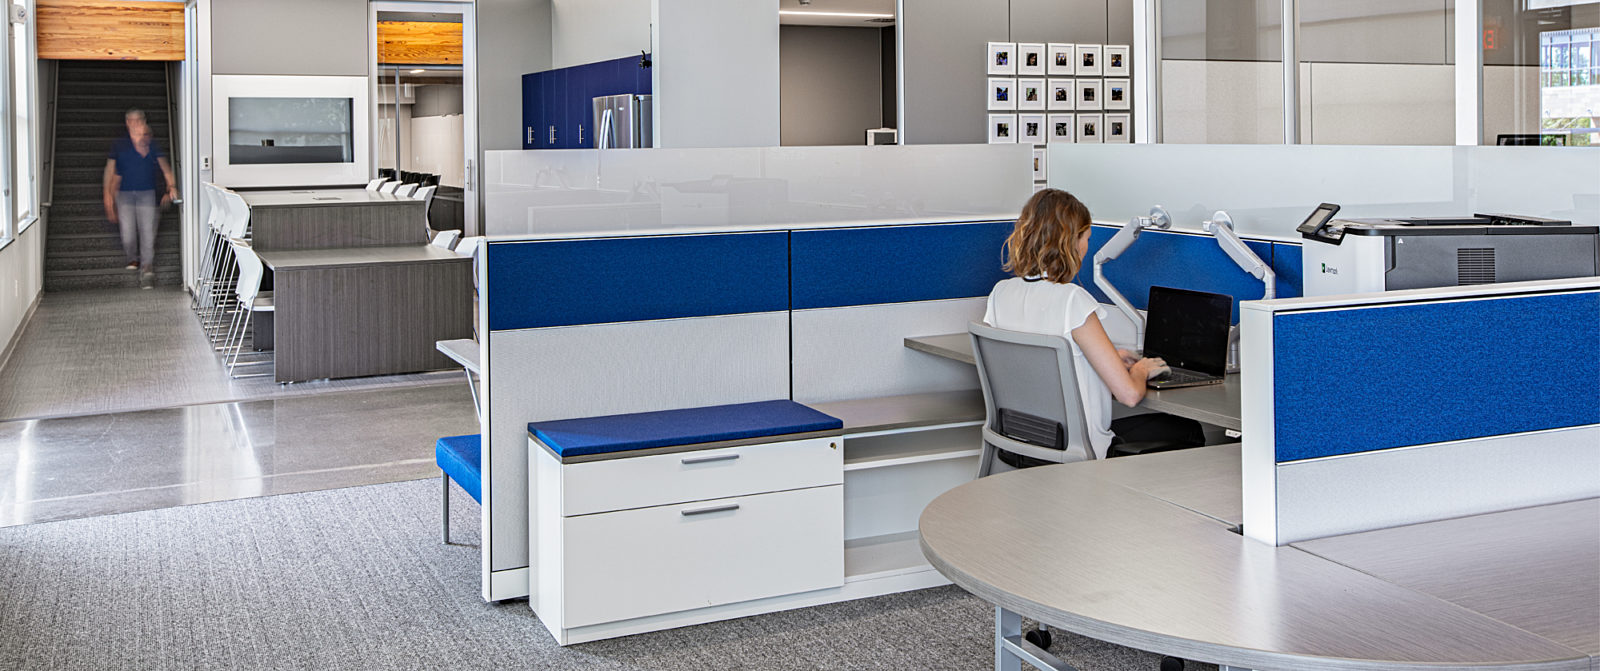 Open workstation with high performance office chair. Adjacent to a breakroom featuring barstools, custom millwork, and embeded technology.